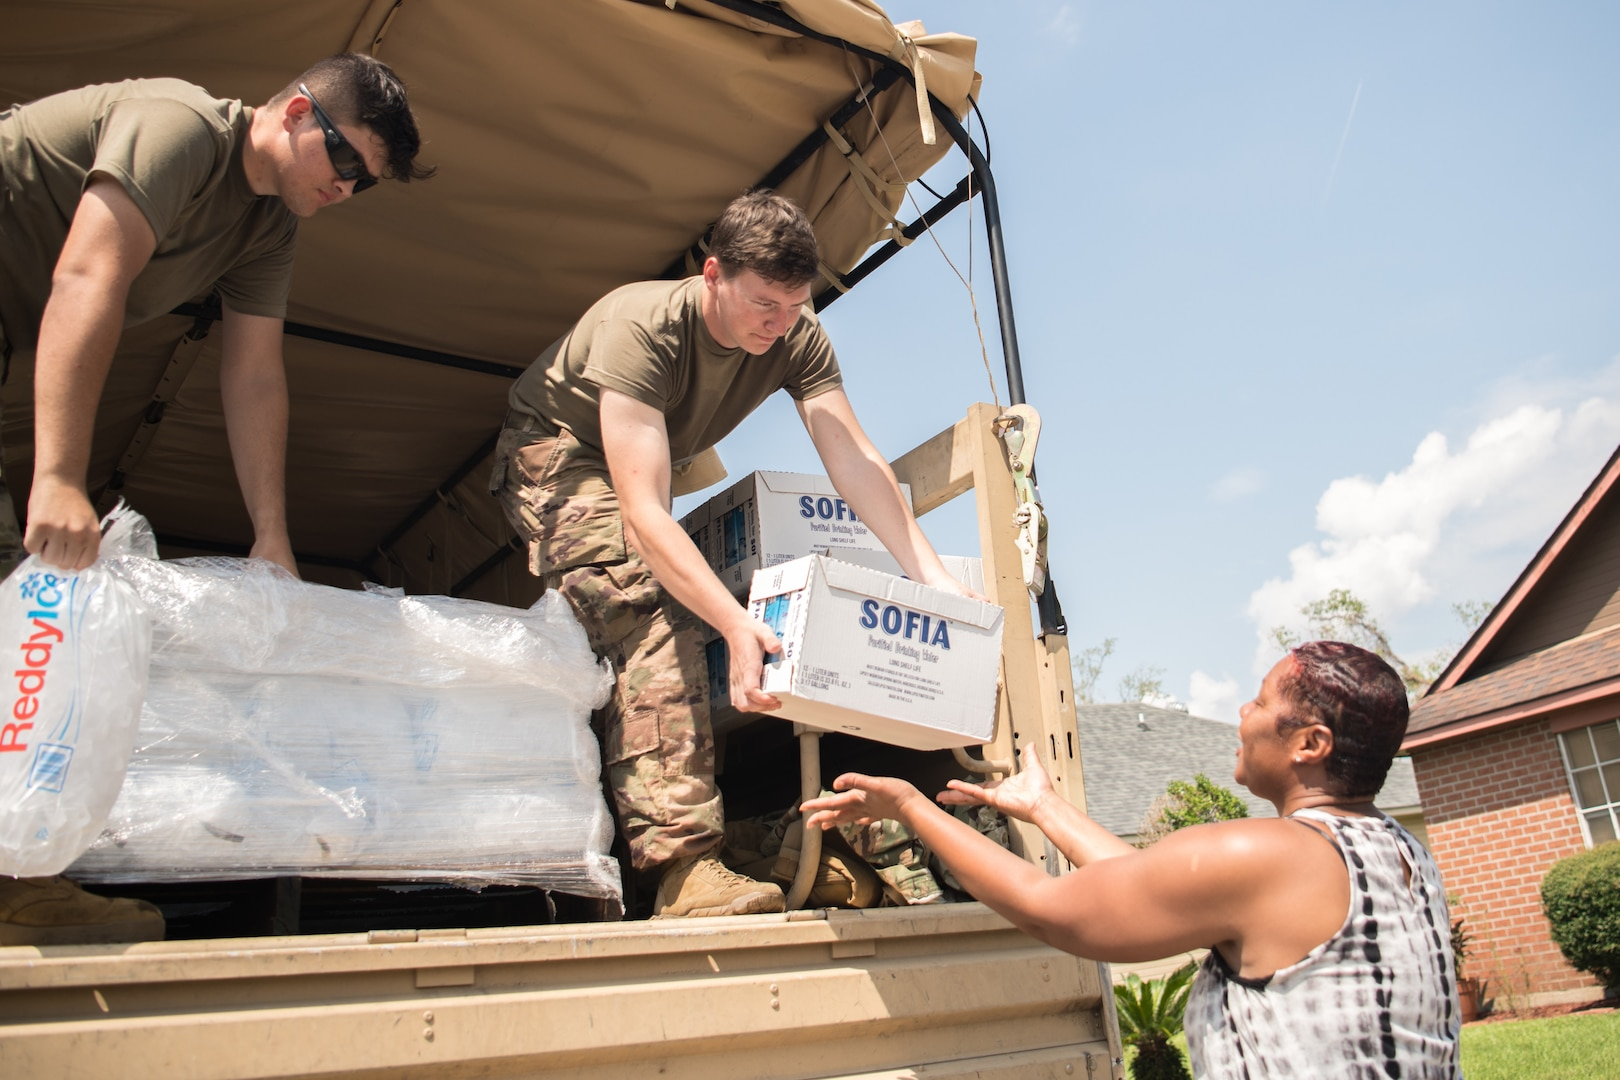 Oklahoma National Guardsmen Spc. Michael West, left, and Spc. Gage Stone, right, truck drivers with Alpha Company, 120th Engineer Battalion, 90th Troop Command, give supplies to a resident of a neighborhood in LaPlace, Louisiana, Sept. 7, 2021. Oklahoma National Guardsmen drove throughout neighborhoods to distribute supplies directly to Louisiana residents, allowing for essential aid to reach the local populace quickly. (Oklahoma National Guard photo by Senior Airman Alex Kaelke)